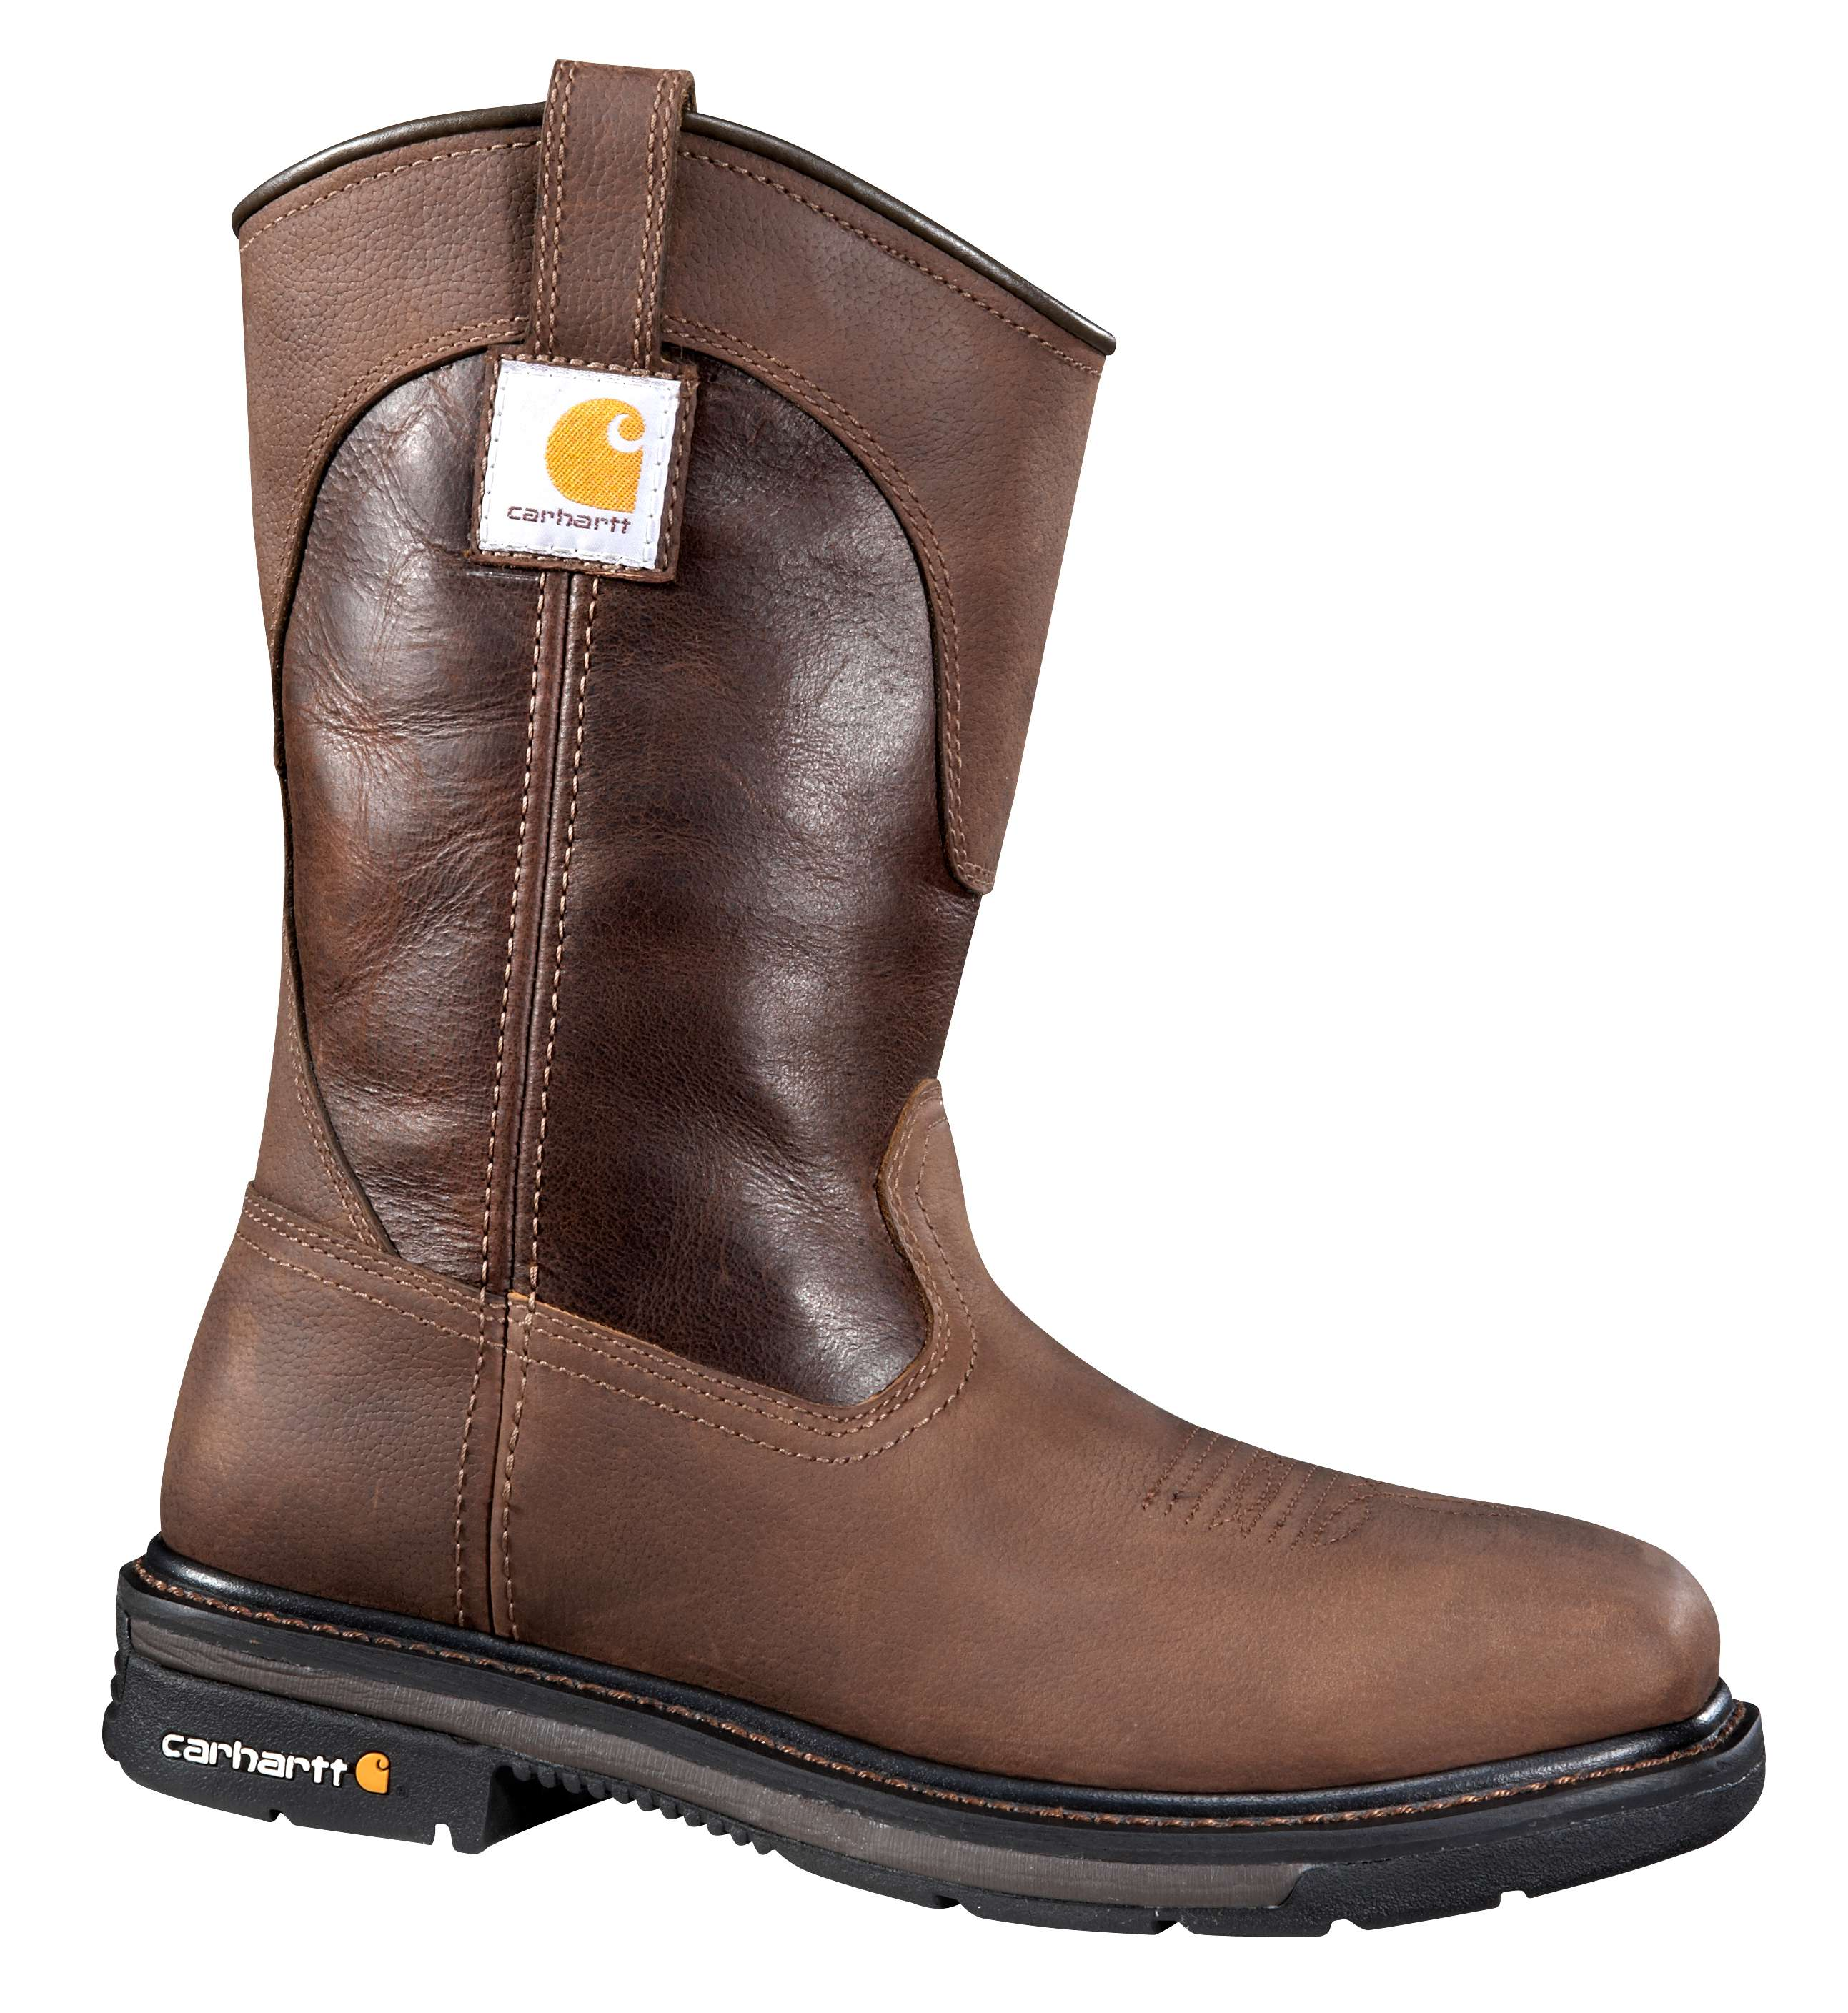 Carhartt 11-inch Square Steel Toe Wellington Boot